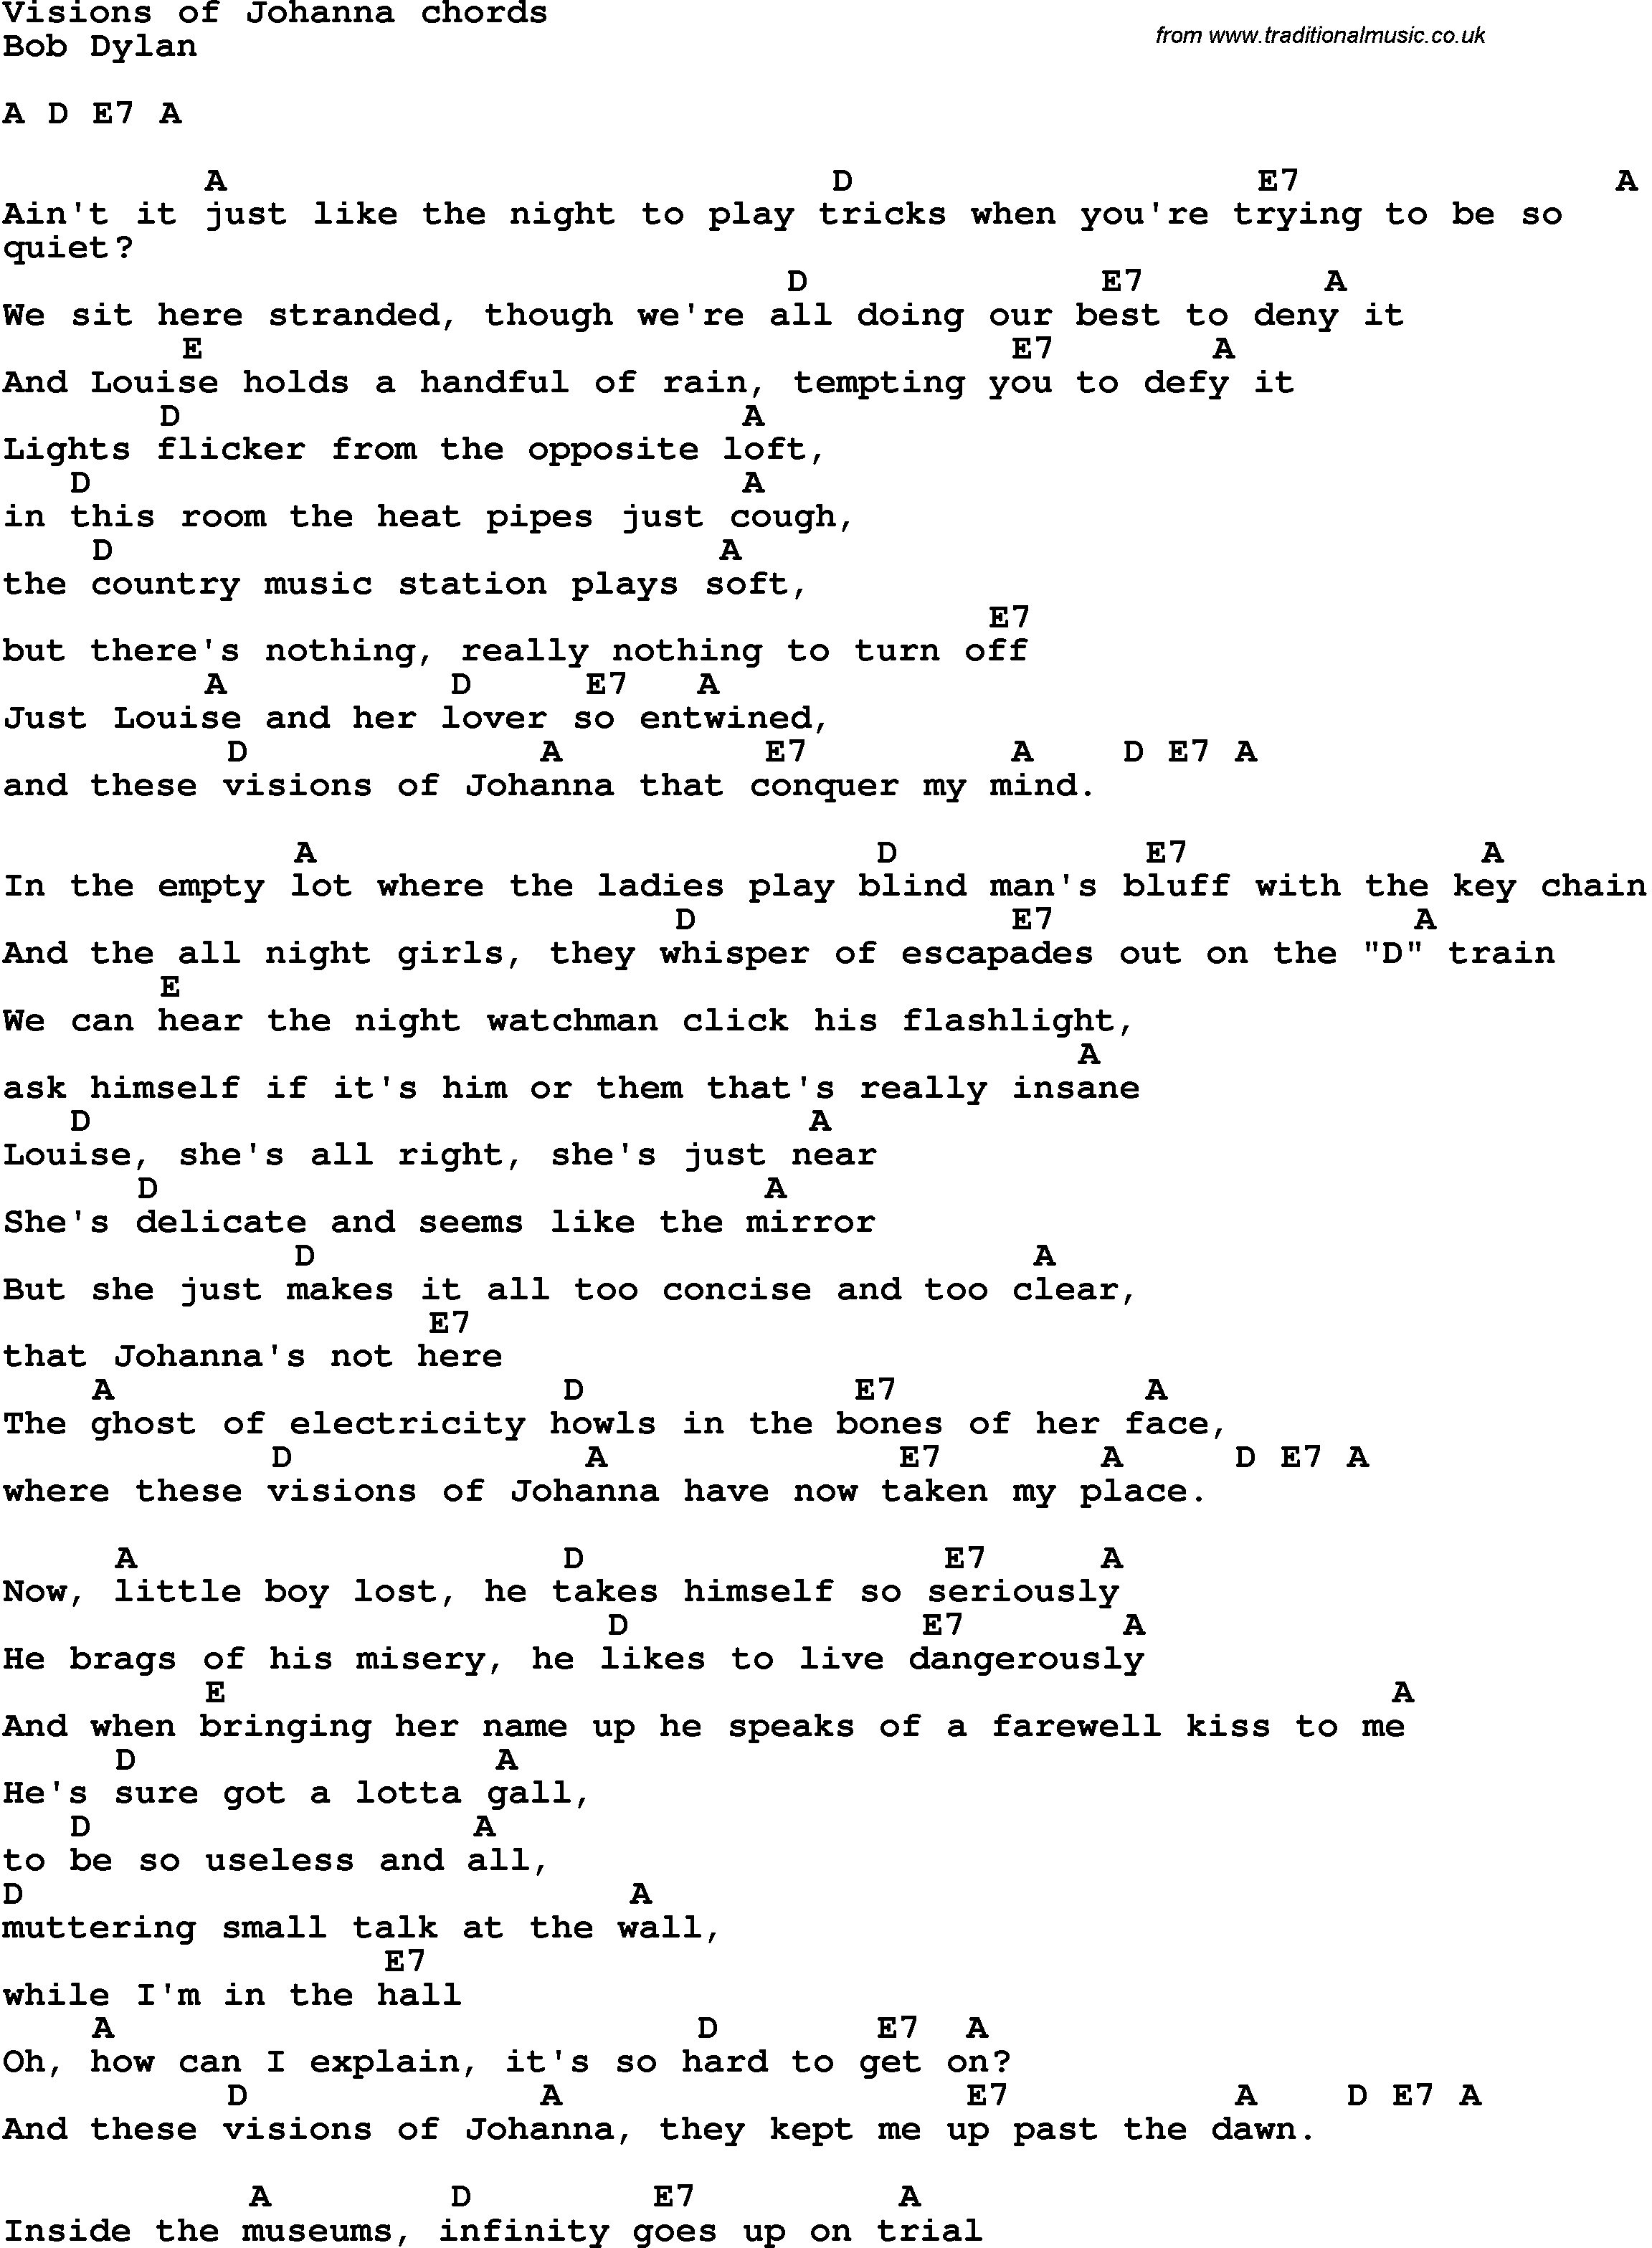 Song Lyrics With Guitar Chords For Visions Of Johanna